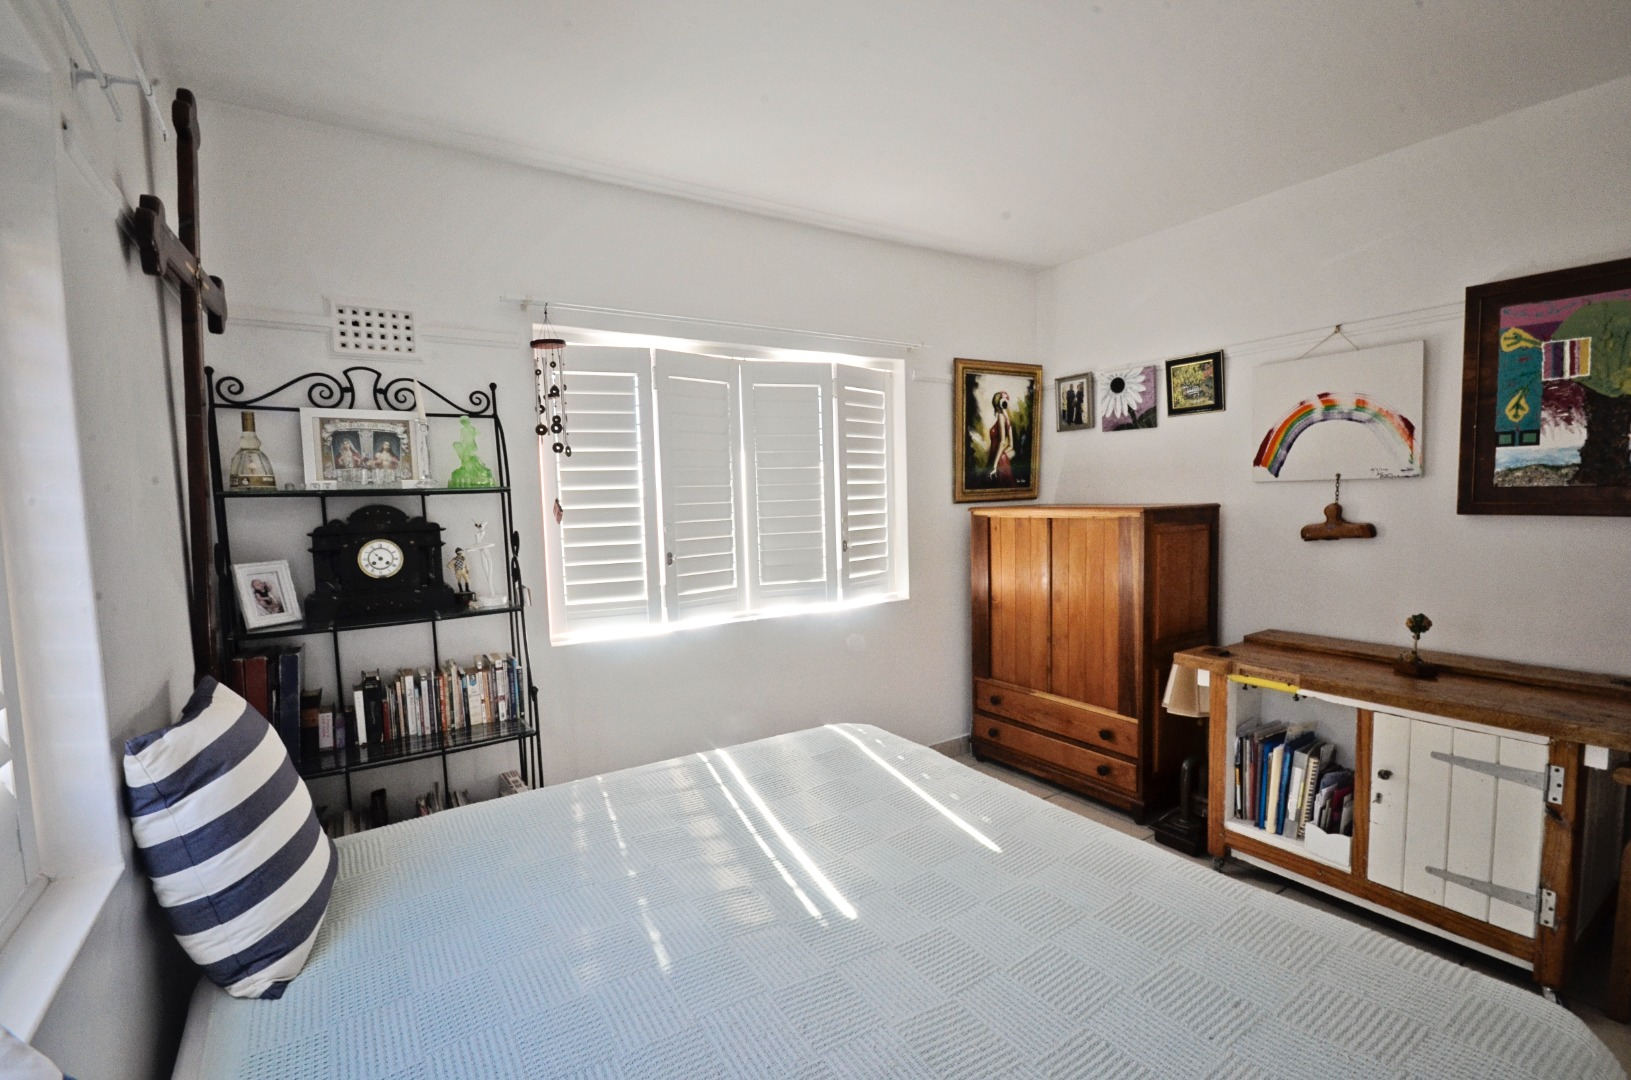 2 Bedroom Apartment / Flat For Sale in Simons Town Central